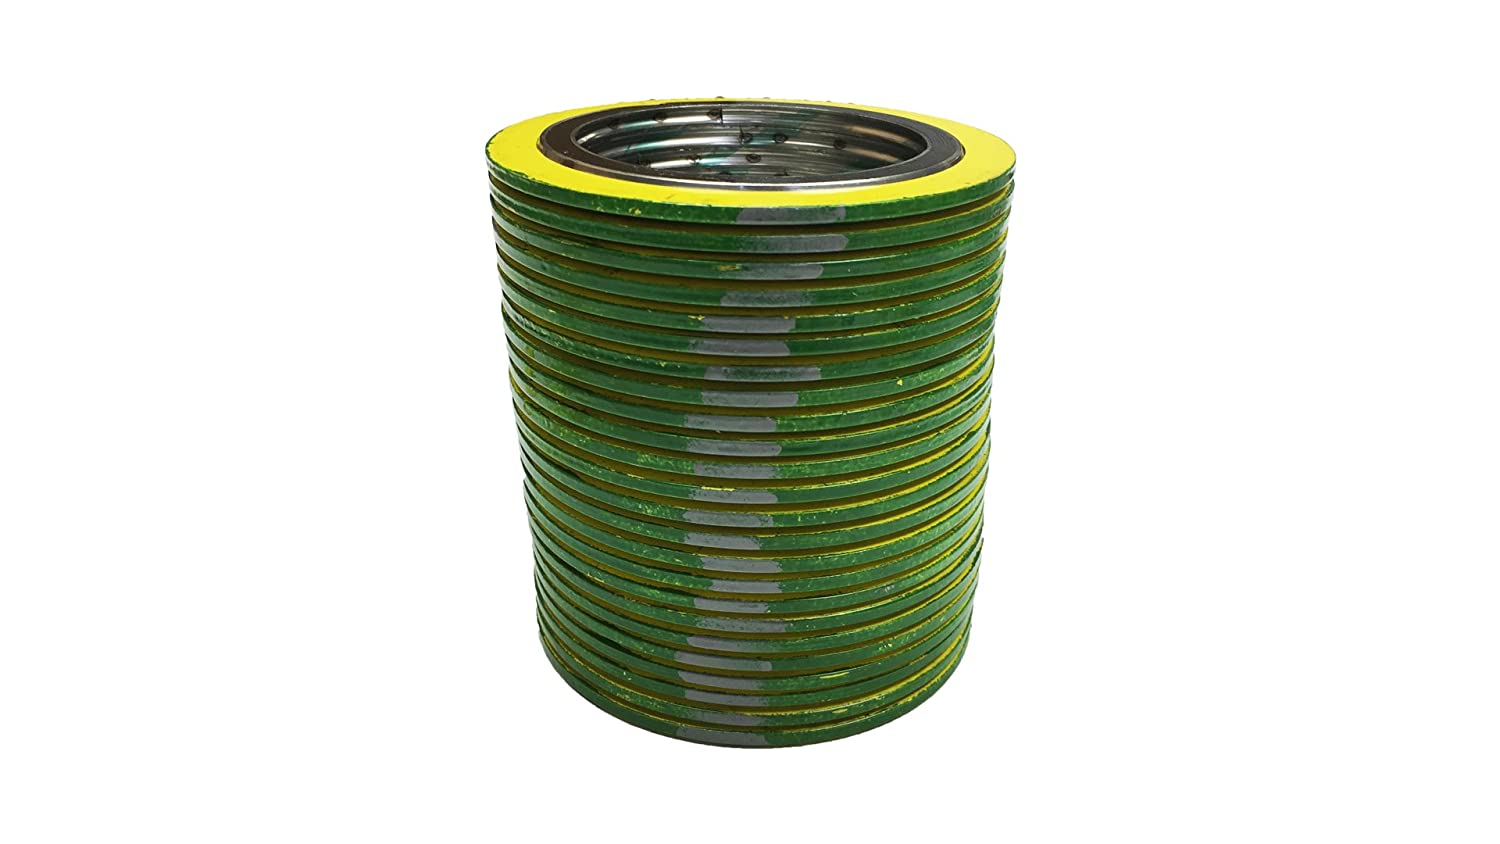 Pressure Class 600# QTY: 24 for 2 Pipe Supplied by Sur-Seal Inc of NJ green Band with Grey Stripes Pack of 24 Sterling Seal 90002316GR600X24 316L Stainless Steel spiral Wound Gasket with Flexible Graphite Filler for 2 Pipe